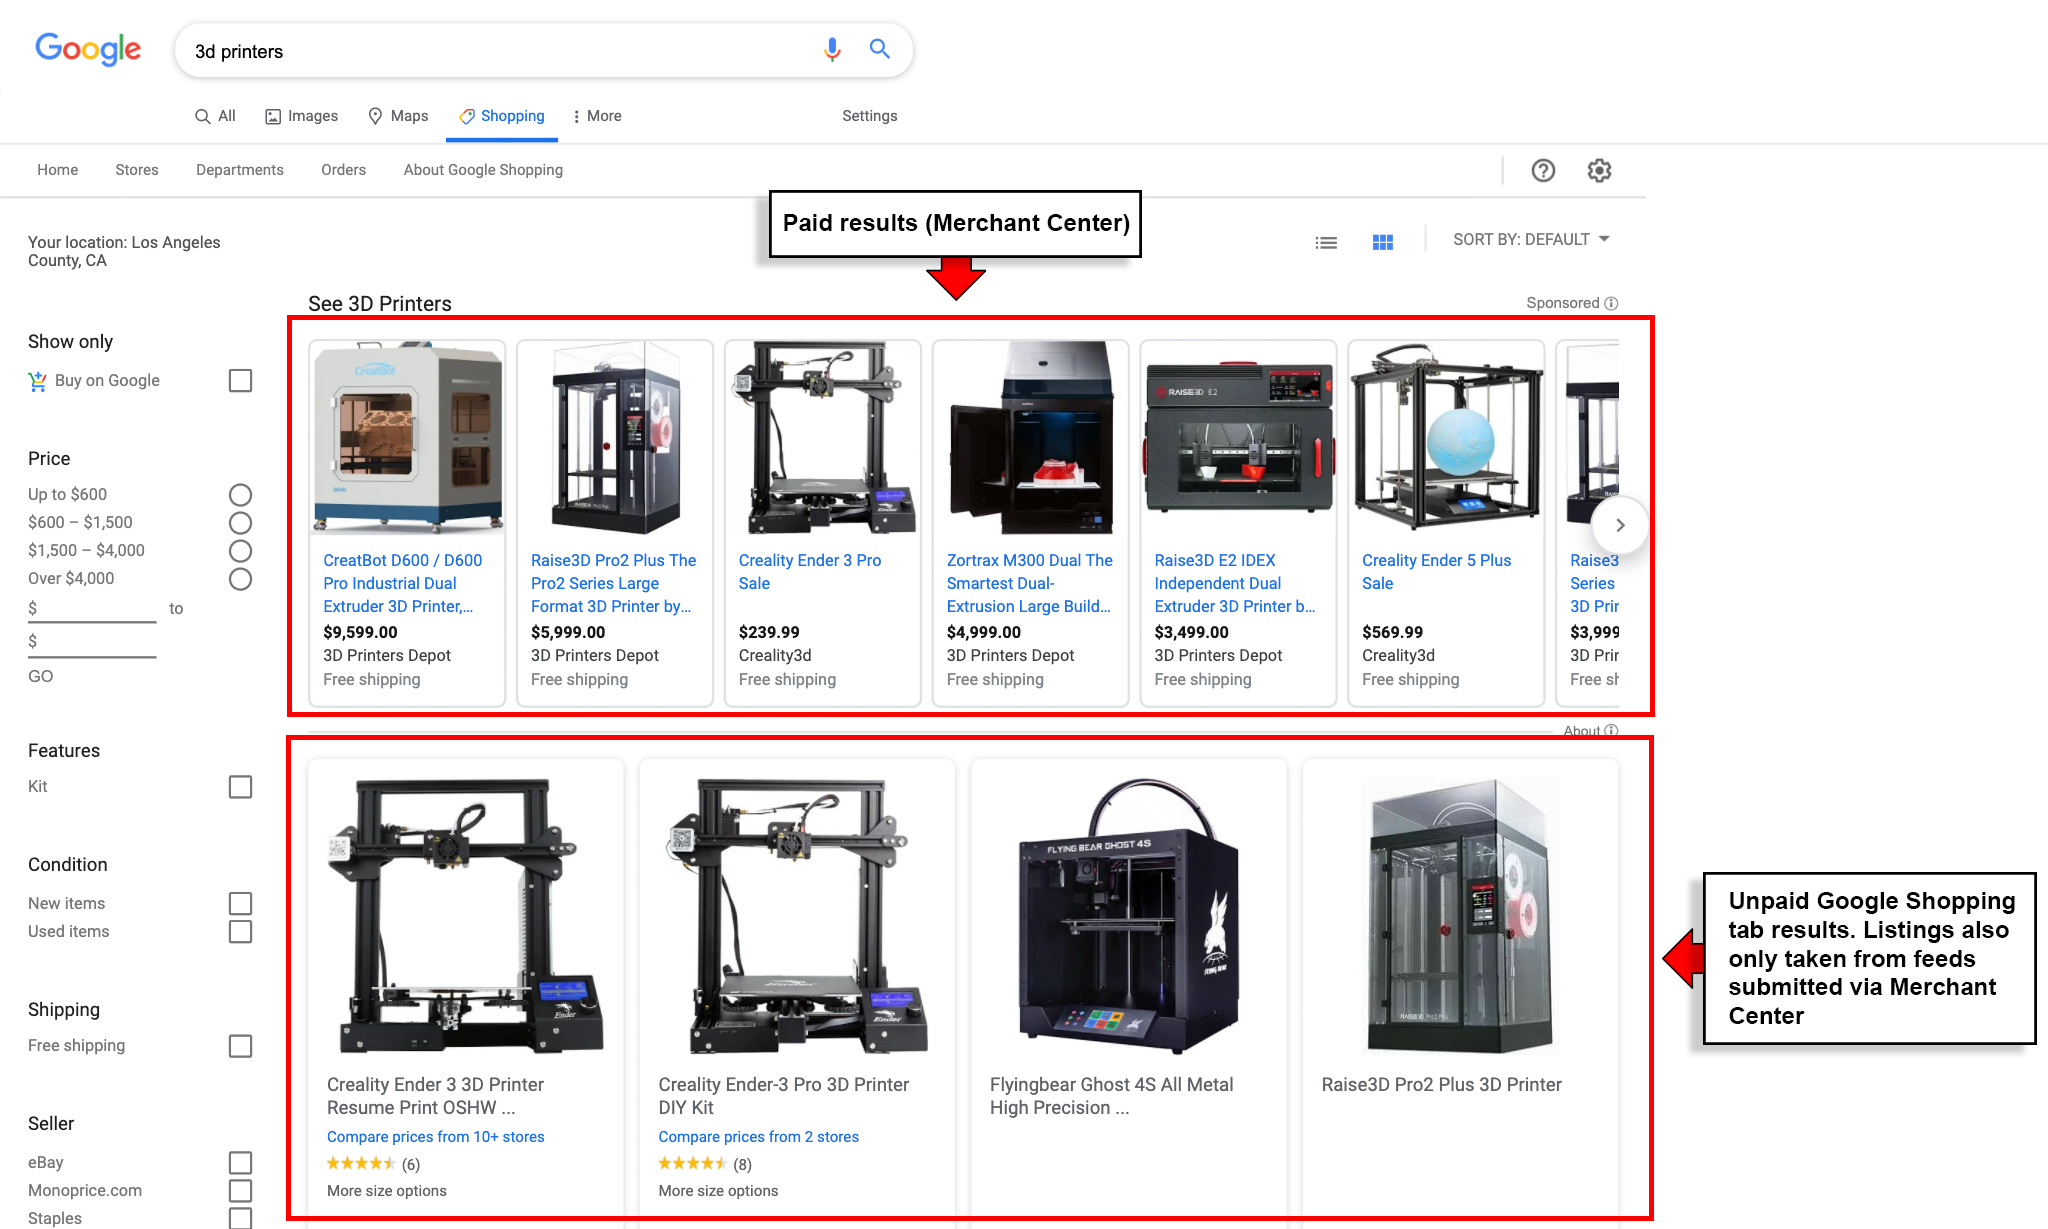 Structured Data Markup Not Supported for Unpaid Listings in Google Shopping Tab Example